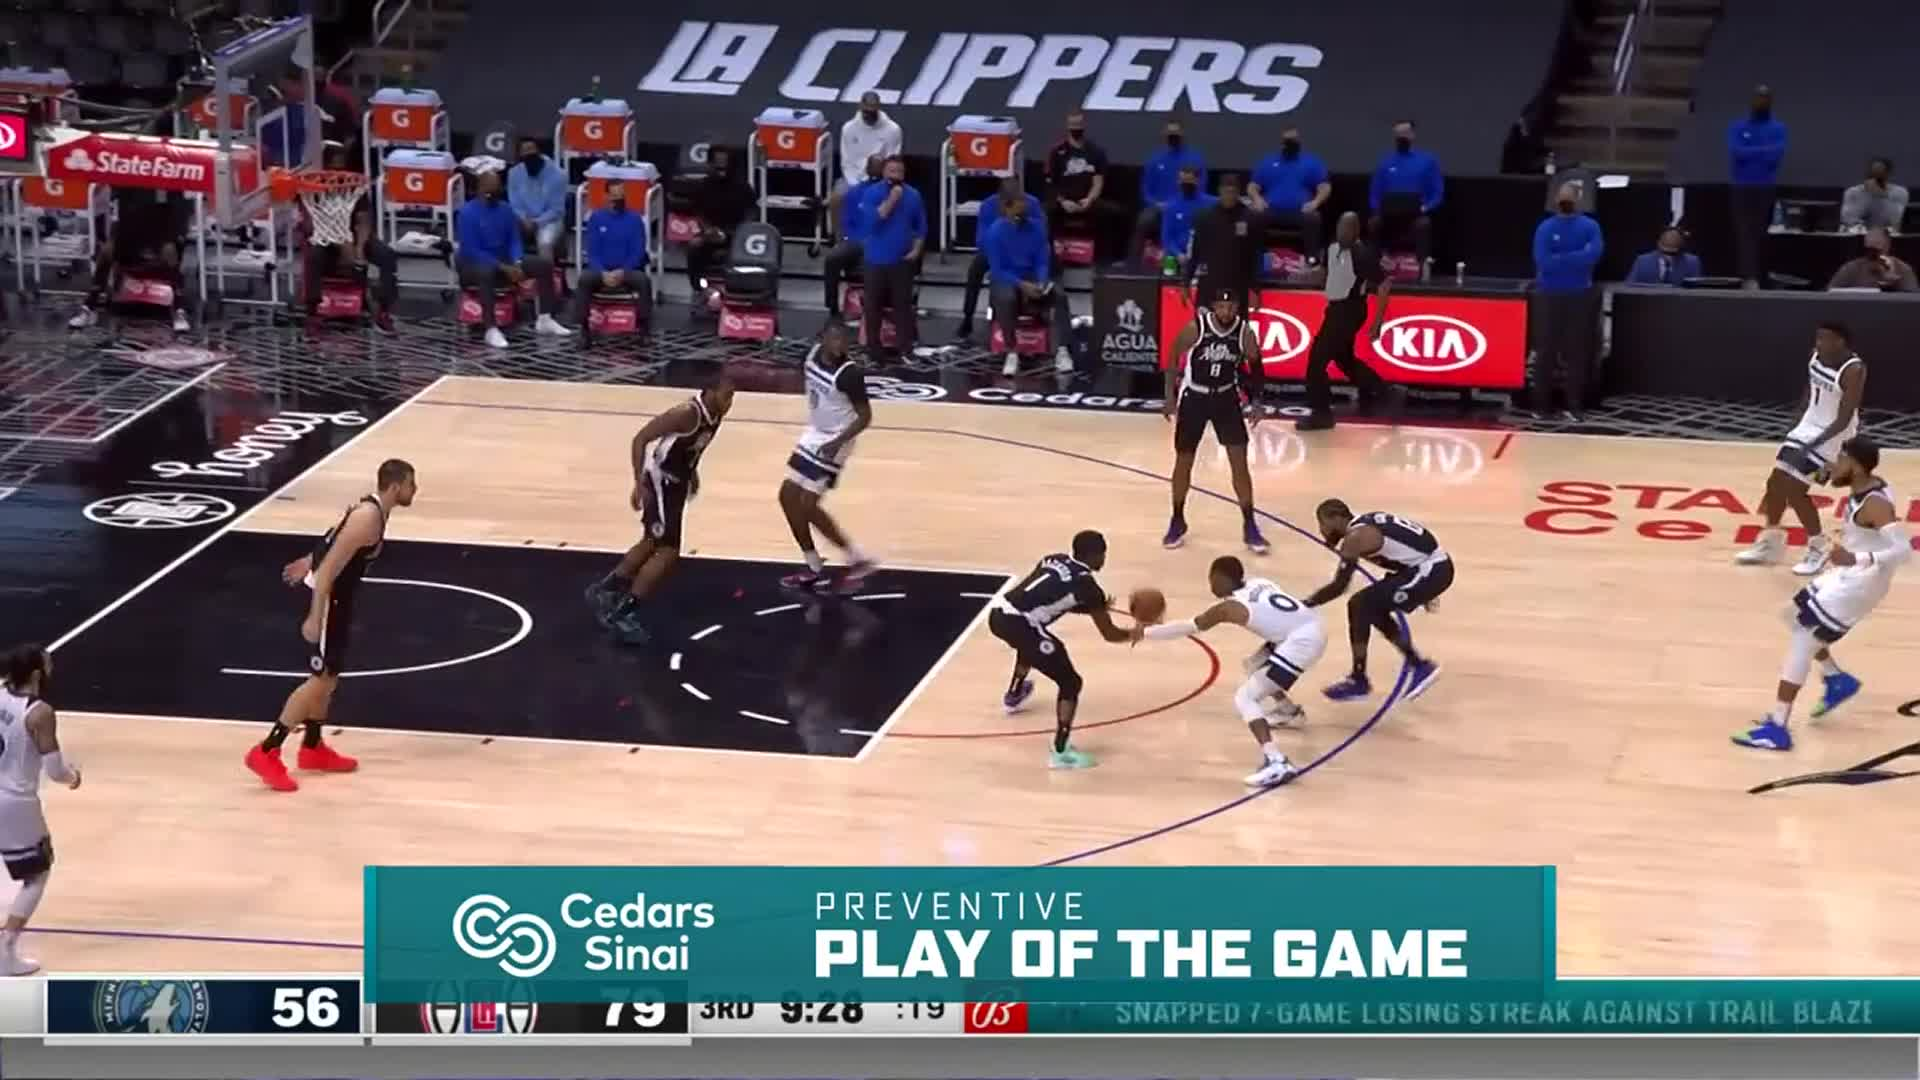 Cedars-Sinai Preventive Play of the Game | Clippers vs Timberwolves (4.18.21)